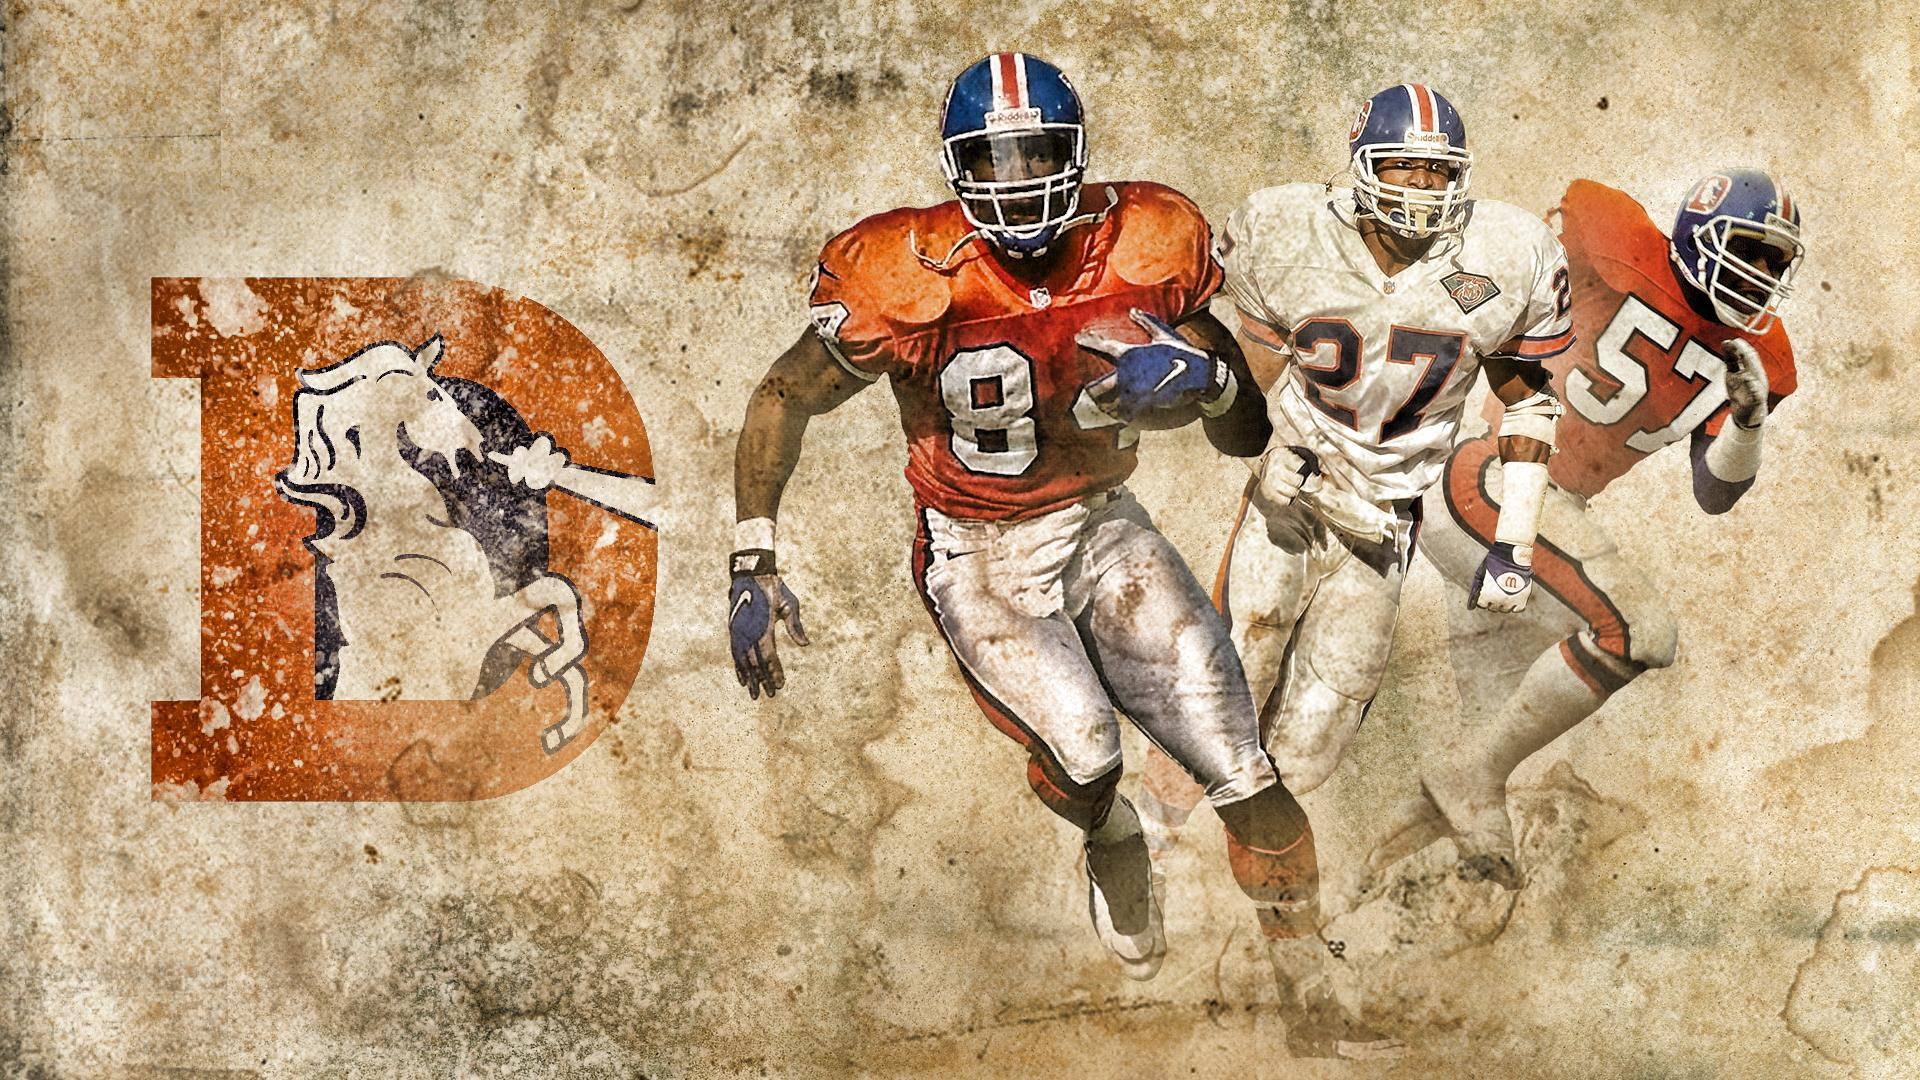 Images About Denver Broncos On Pinterest Denver Broncos 1920x1080